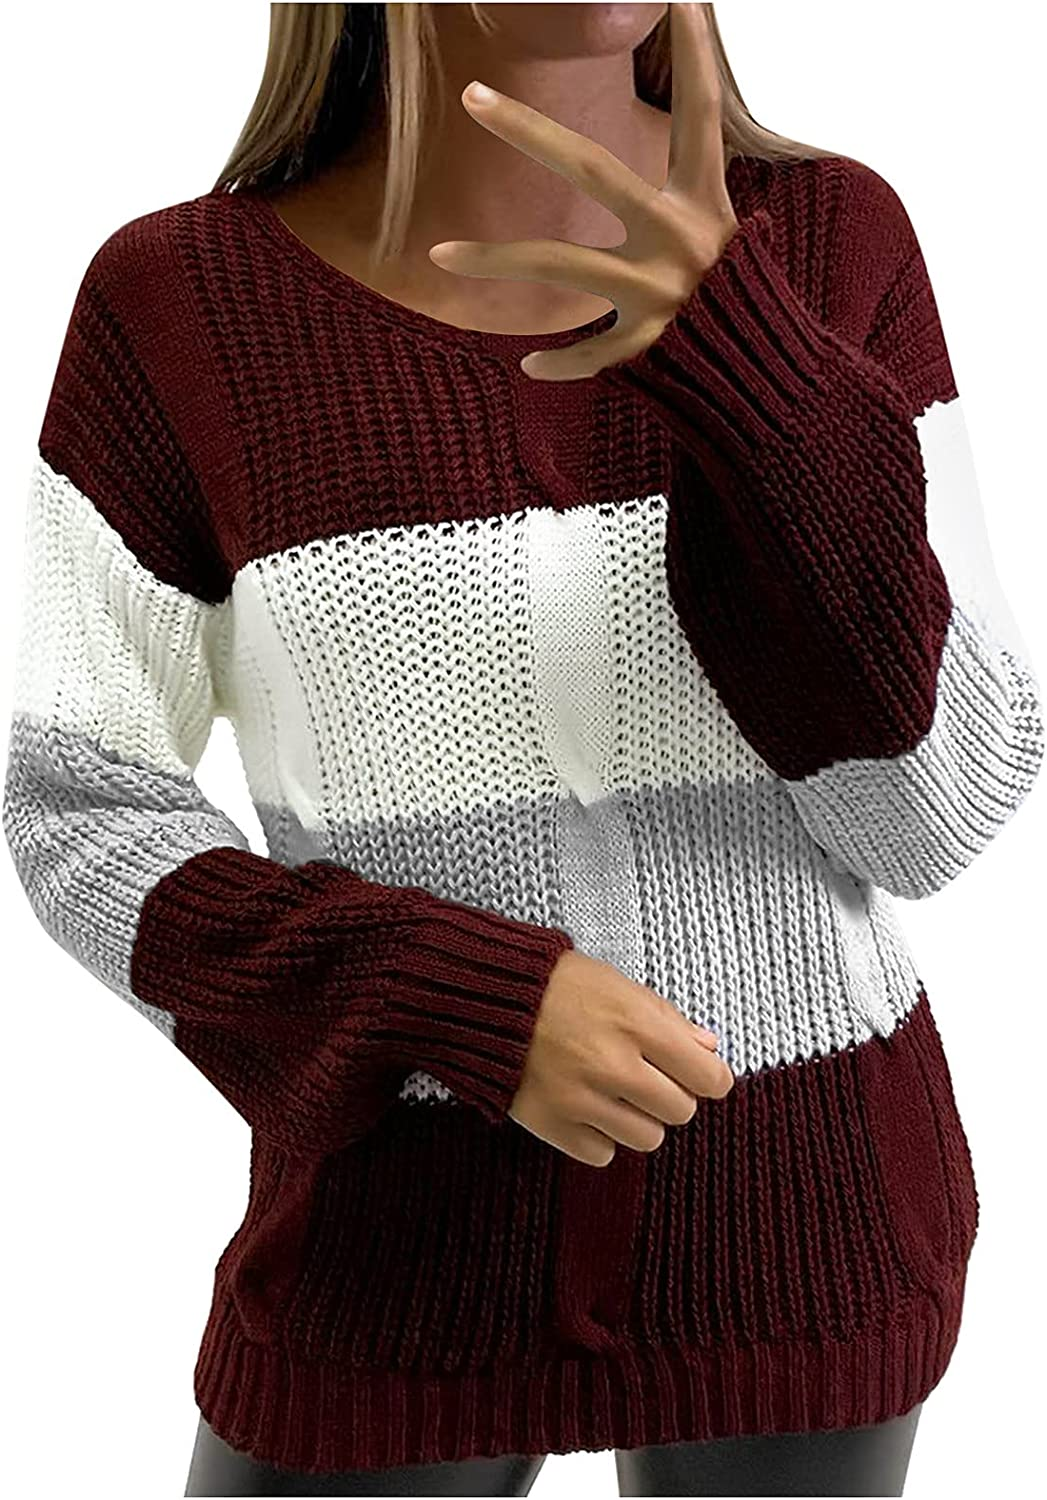 Women's Sweaters Autumn Winter Casual Long Sleeve V Neck Color Block Patchwork Pullover Knit Sweater Tops